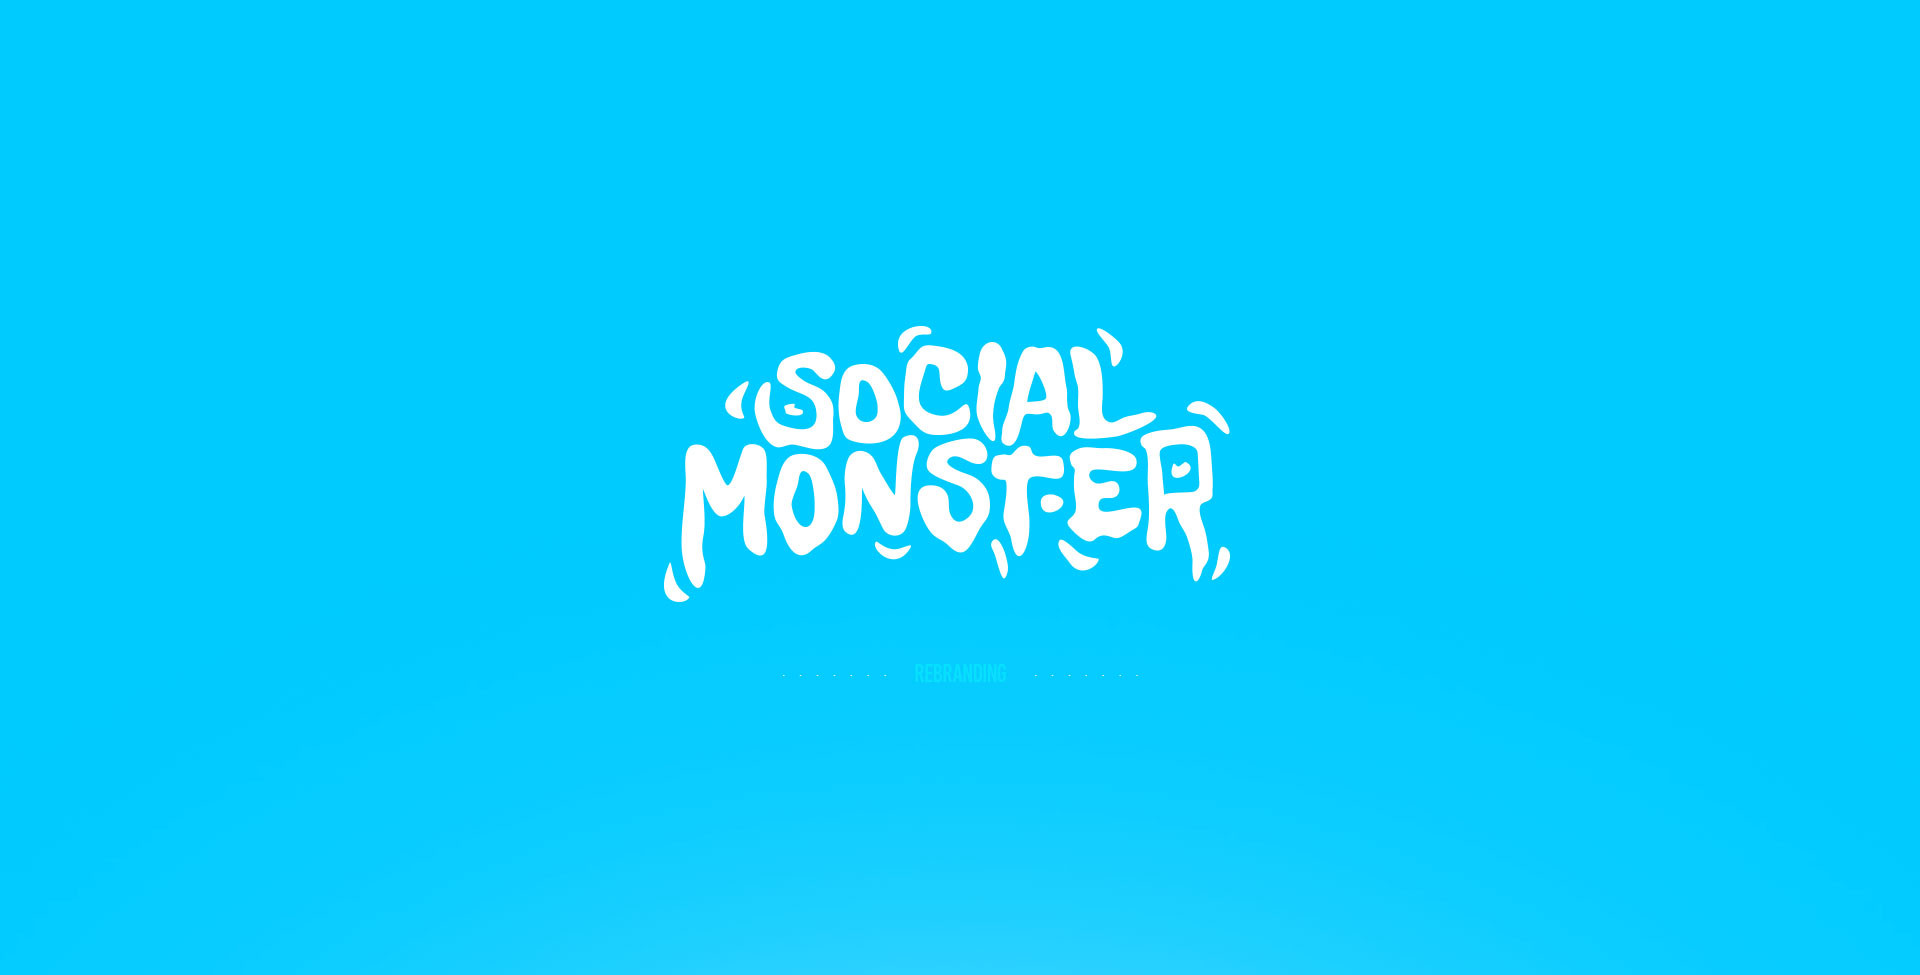 Social Monster New image 1